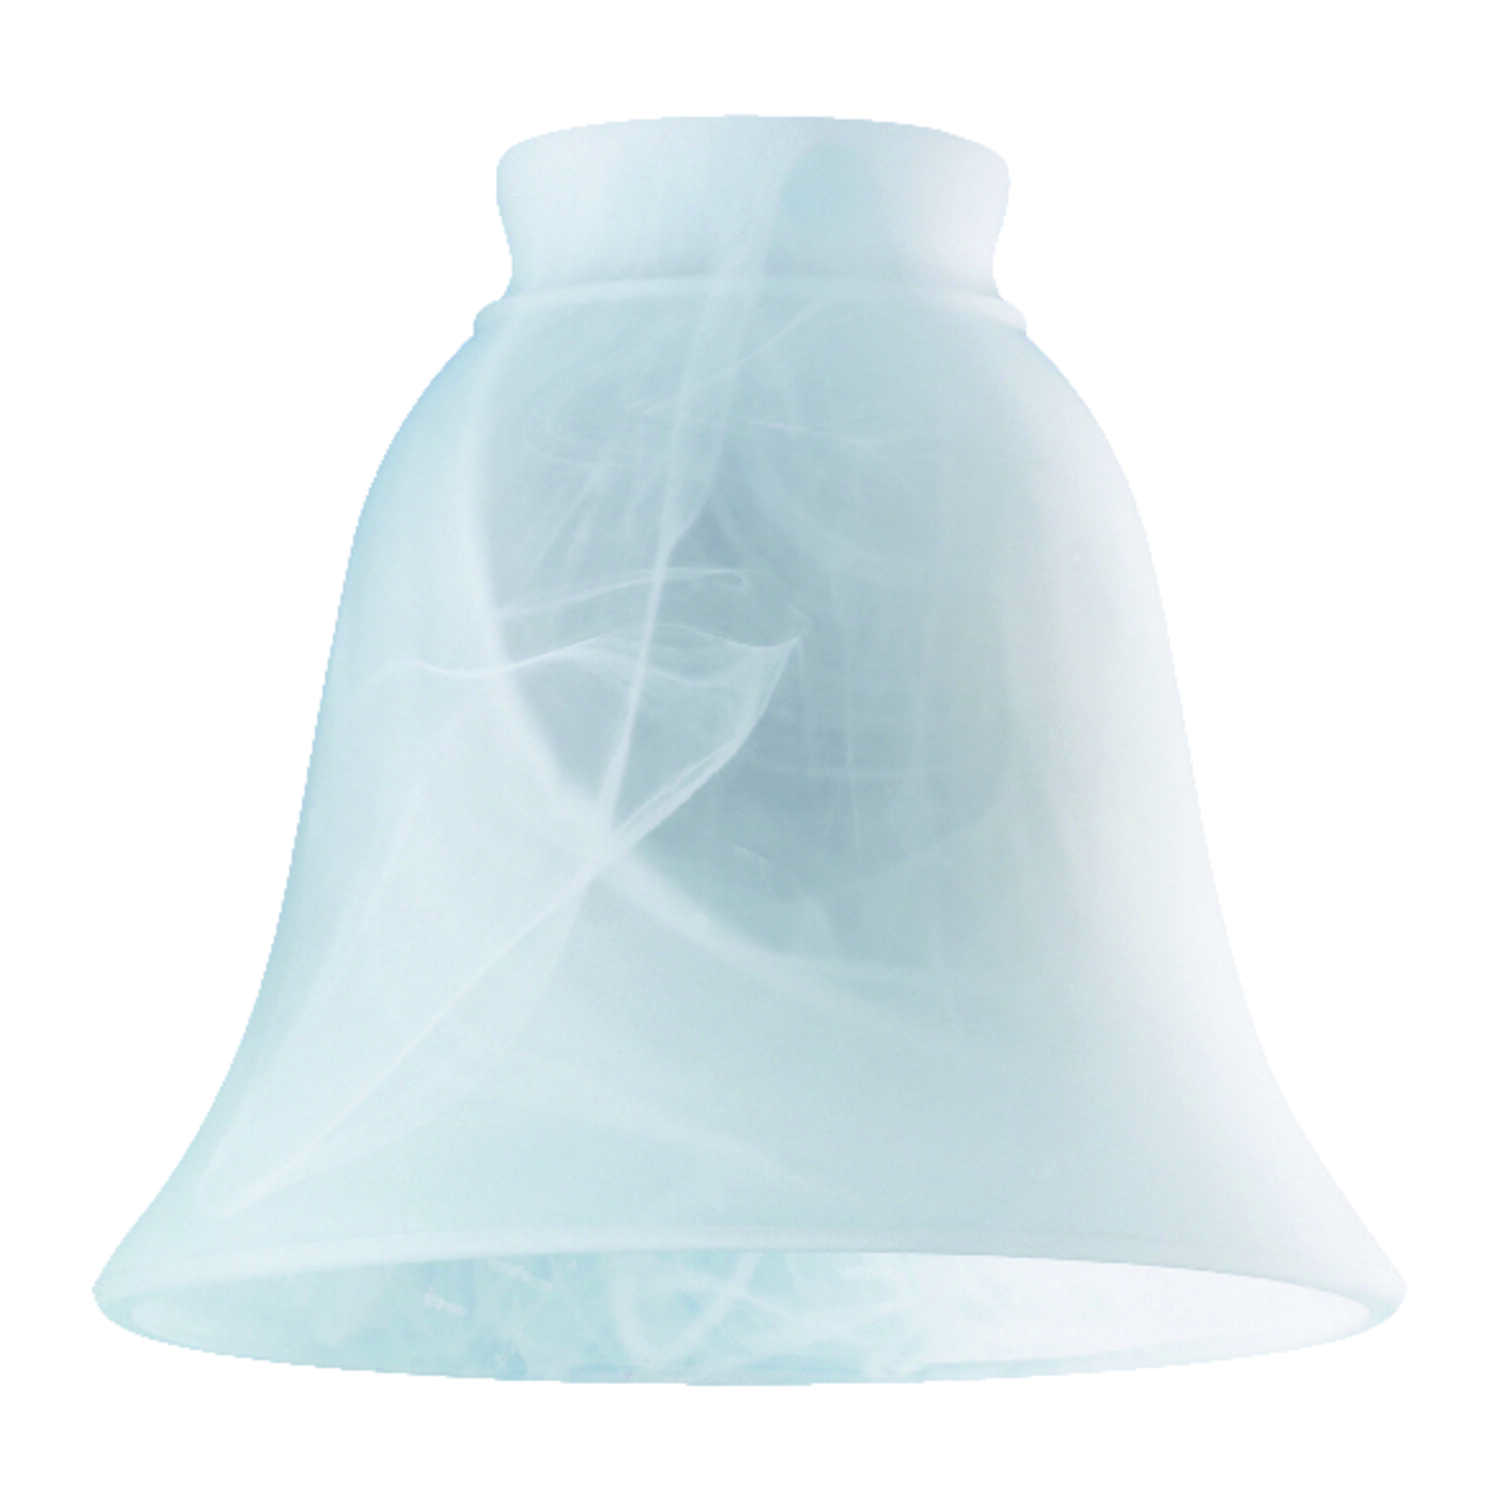 Westinghouse  Bell  White  Glass  Lamp Shade  1 pk